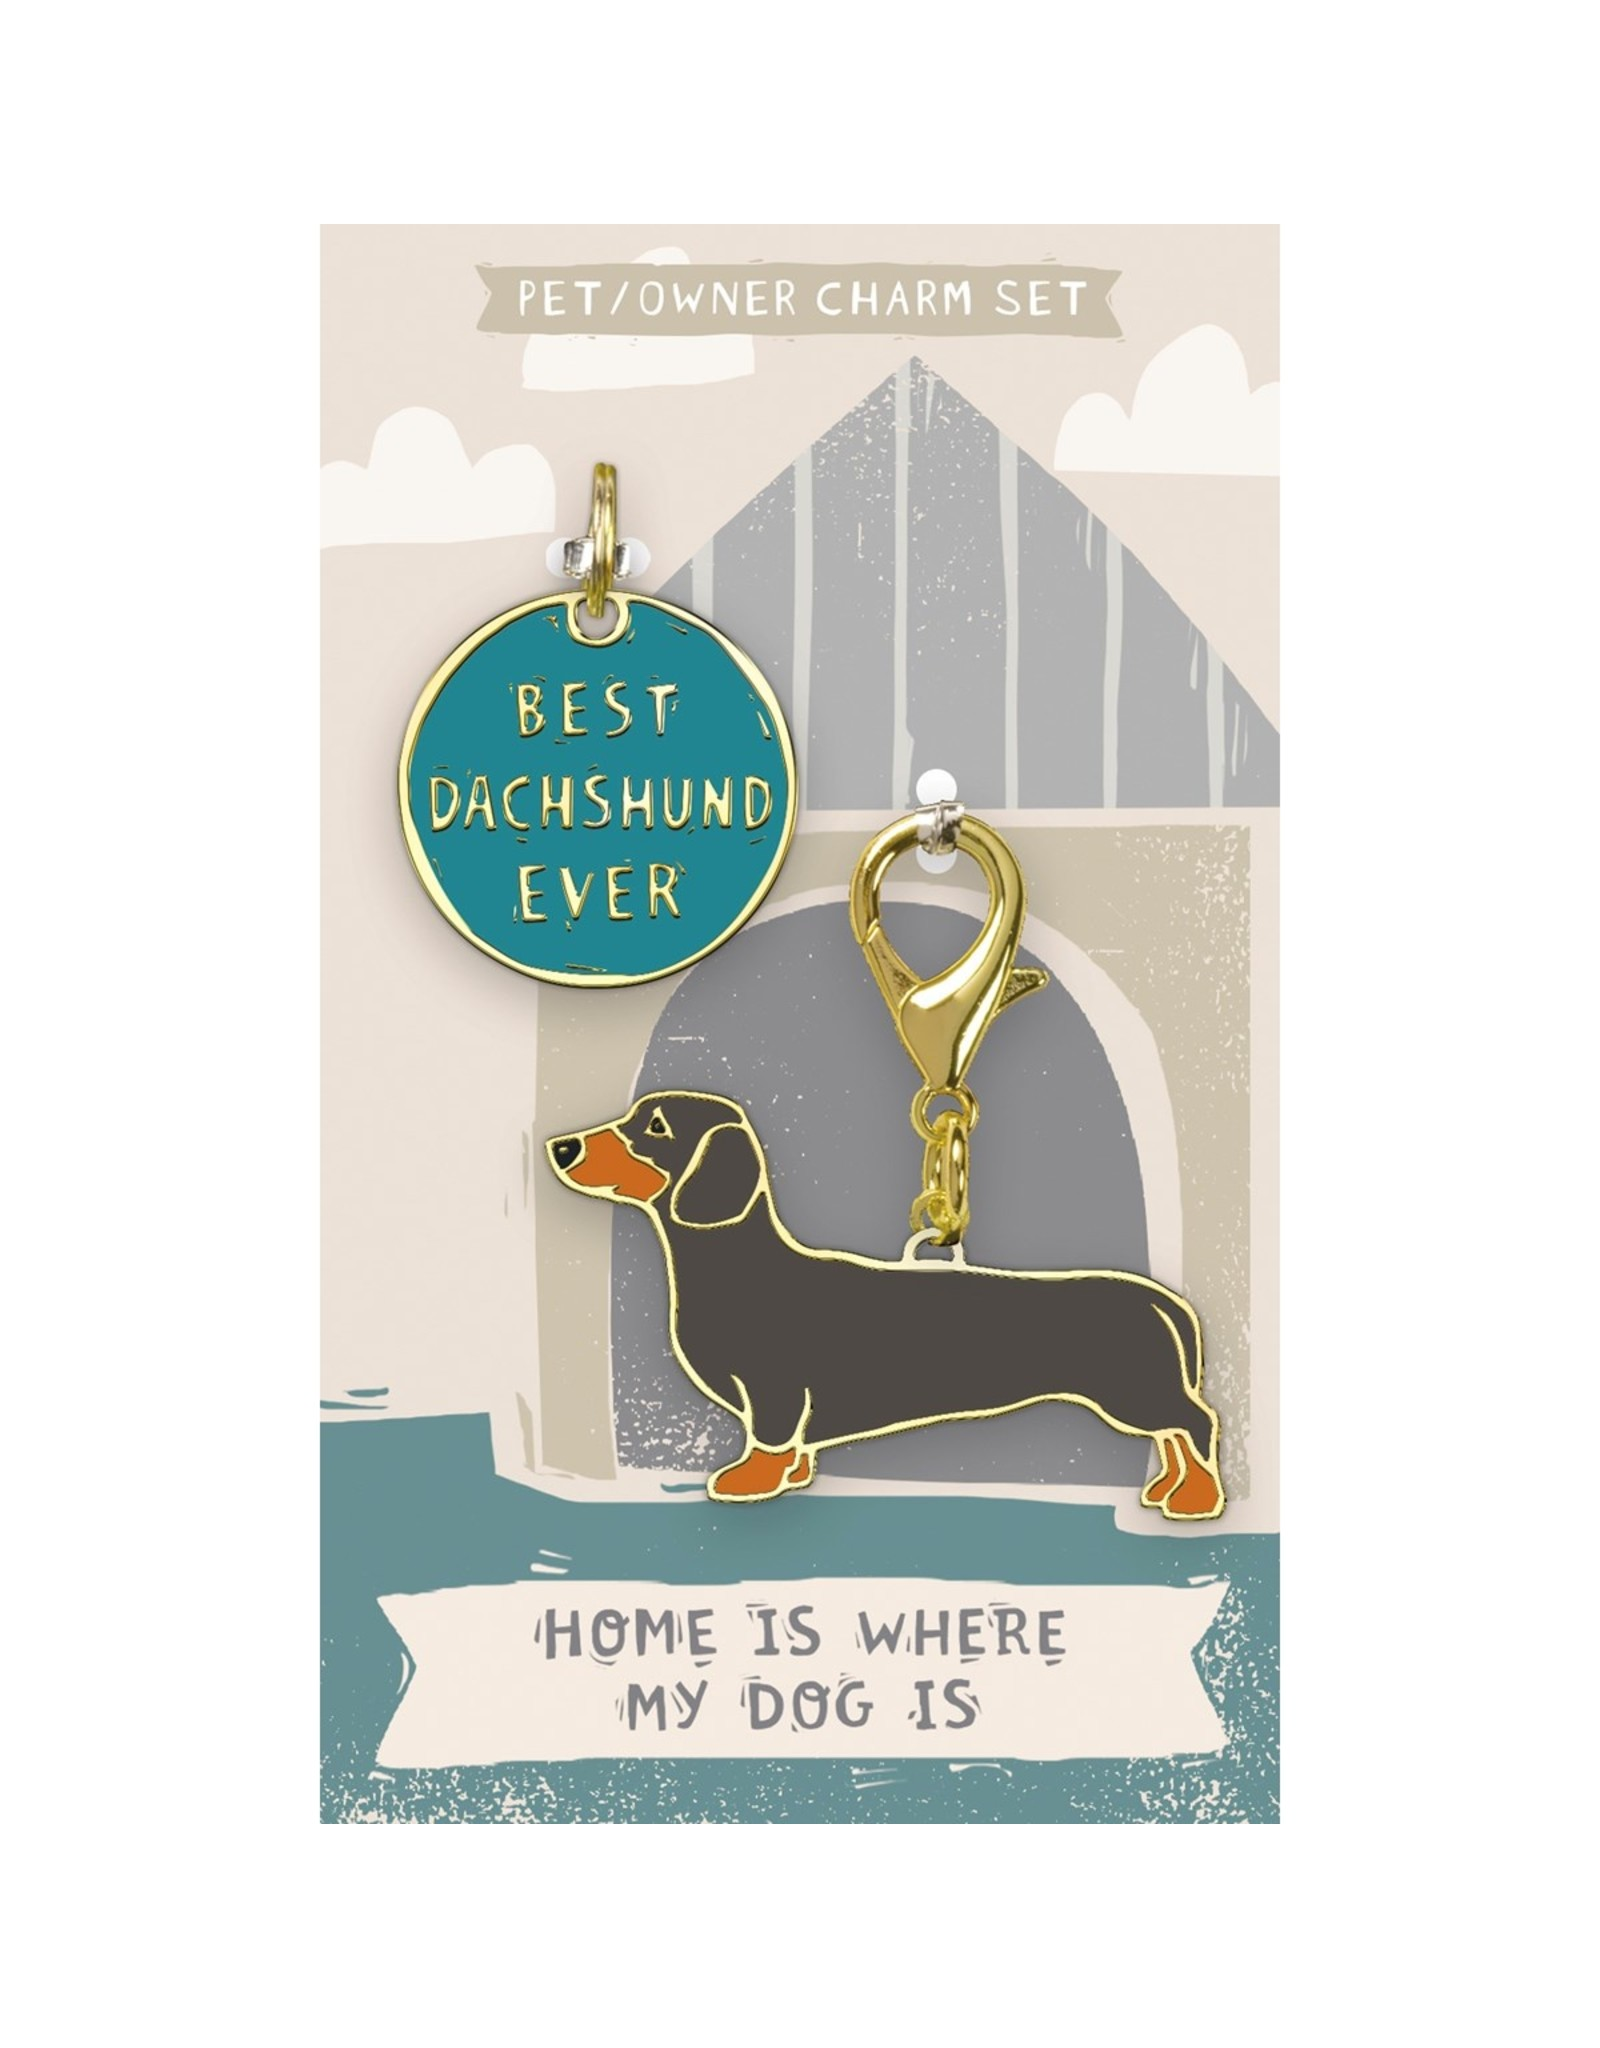 Pet/Owner Charm Set, Dachshund